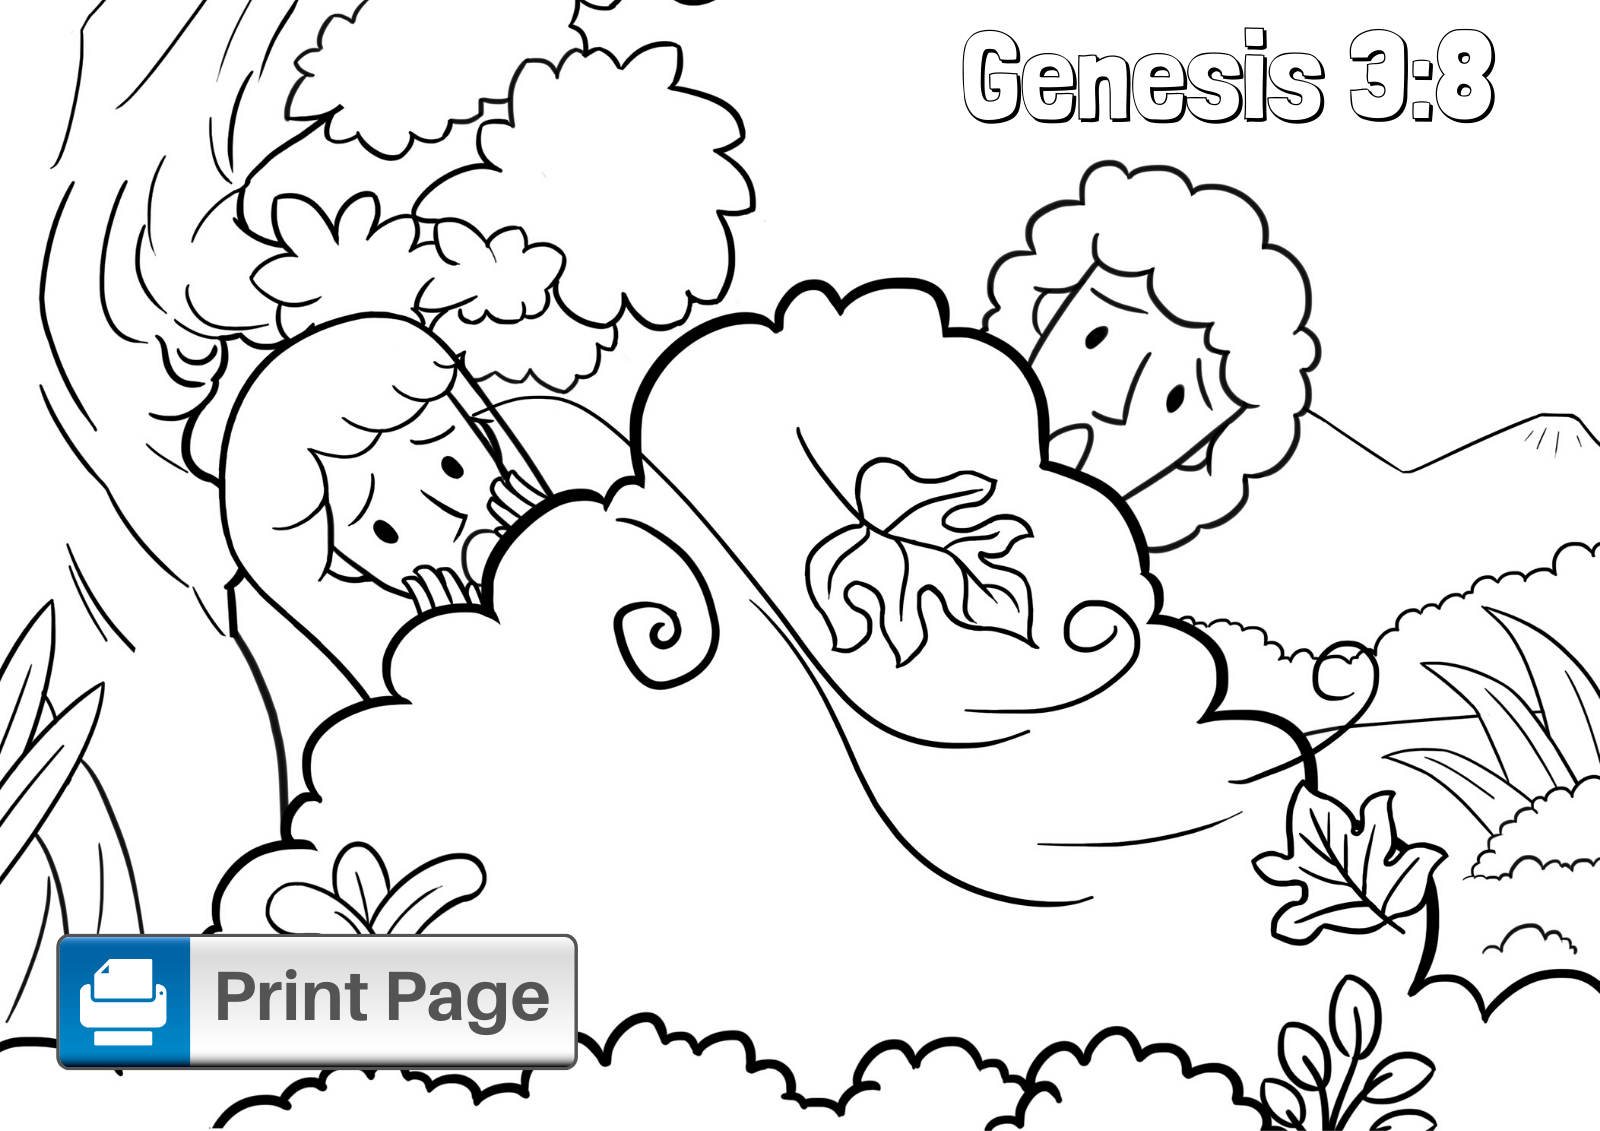 coloring pictures of adam and eve free printable adam and eve coloring pages for kids best adam eve coloring of pictures and